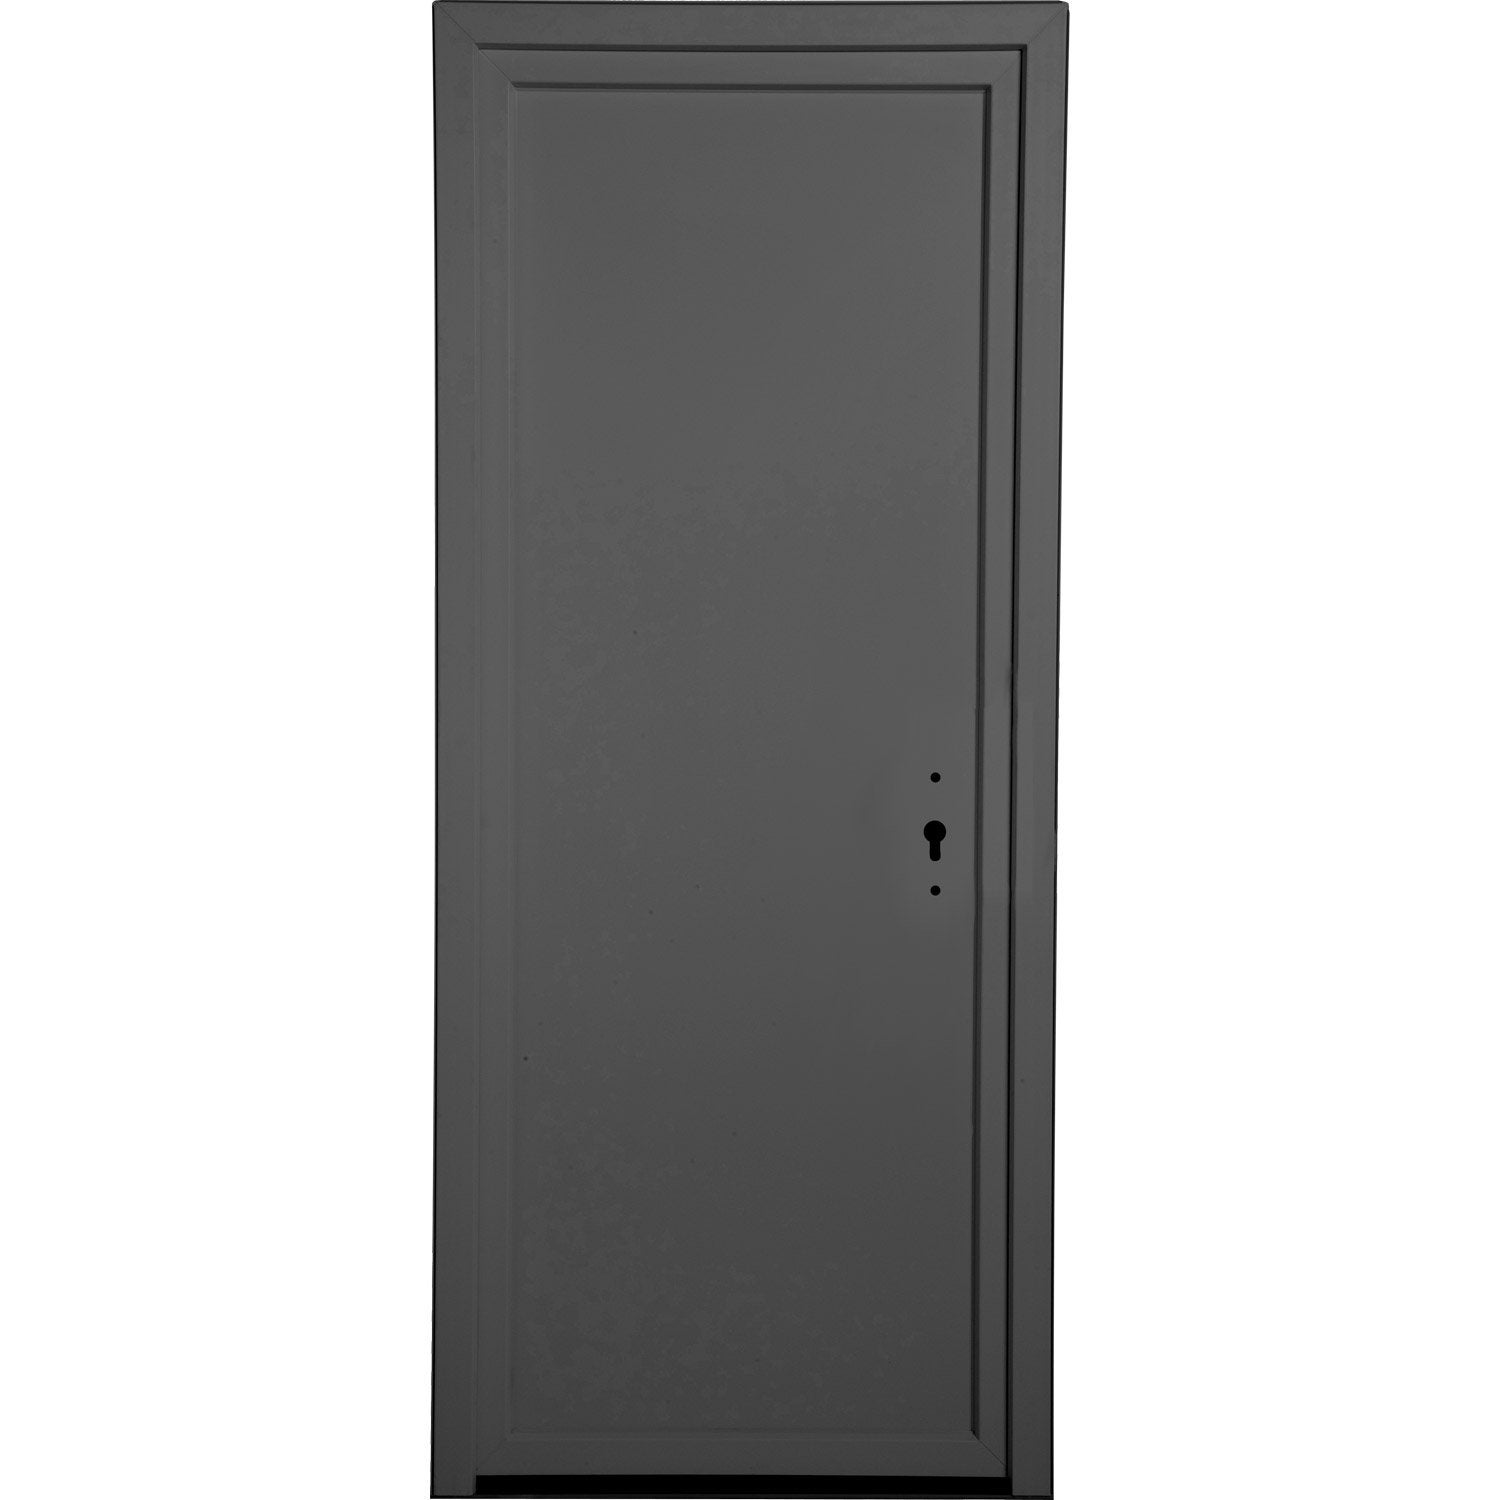 porte de service gris anthracite pvc plein h 200 x l 80 cm poussant gauche leroy merlin. Black Bedroom Furniture Sets. Home Design Ideas